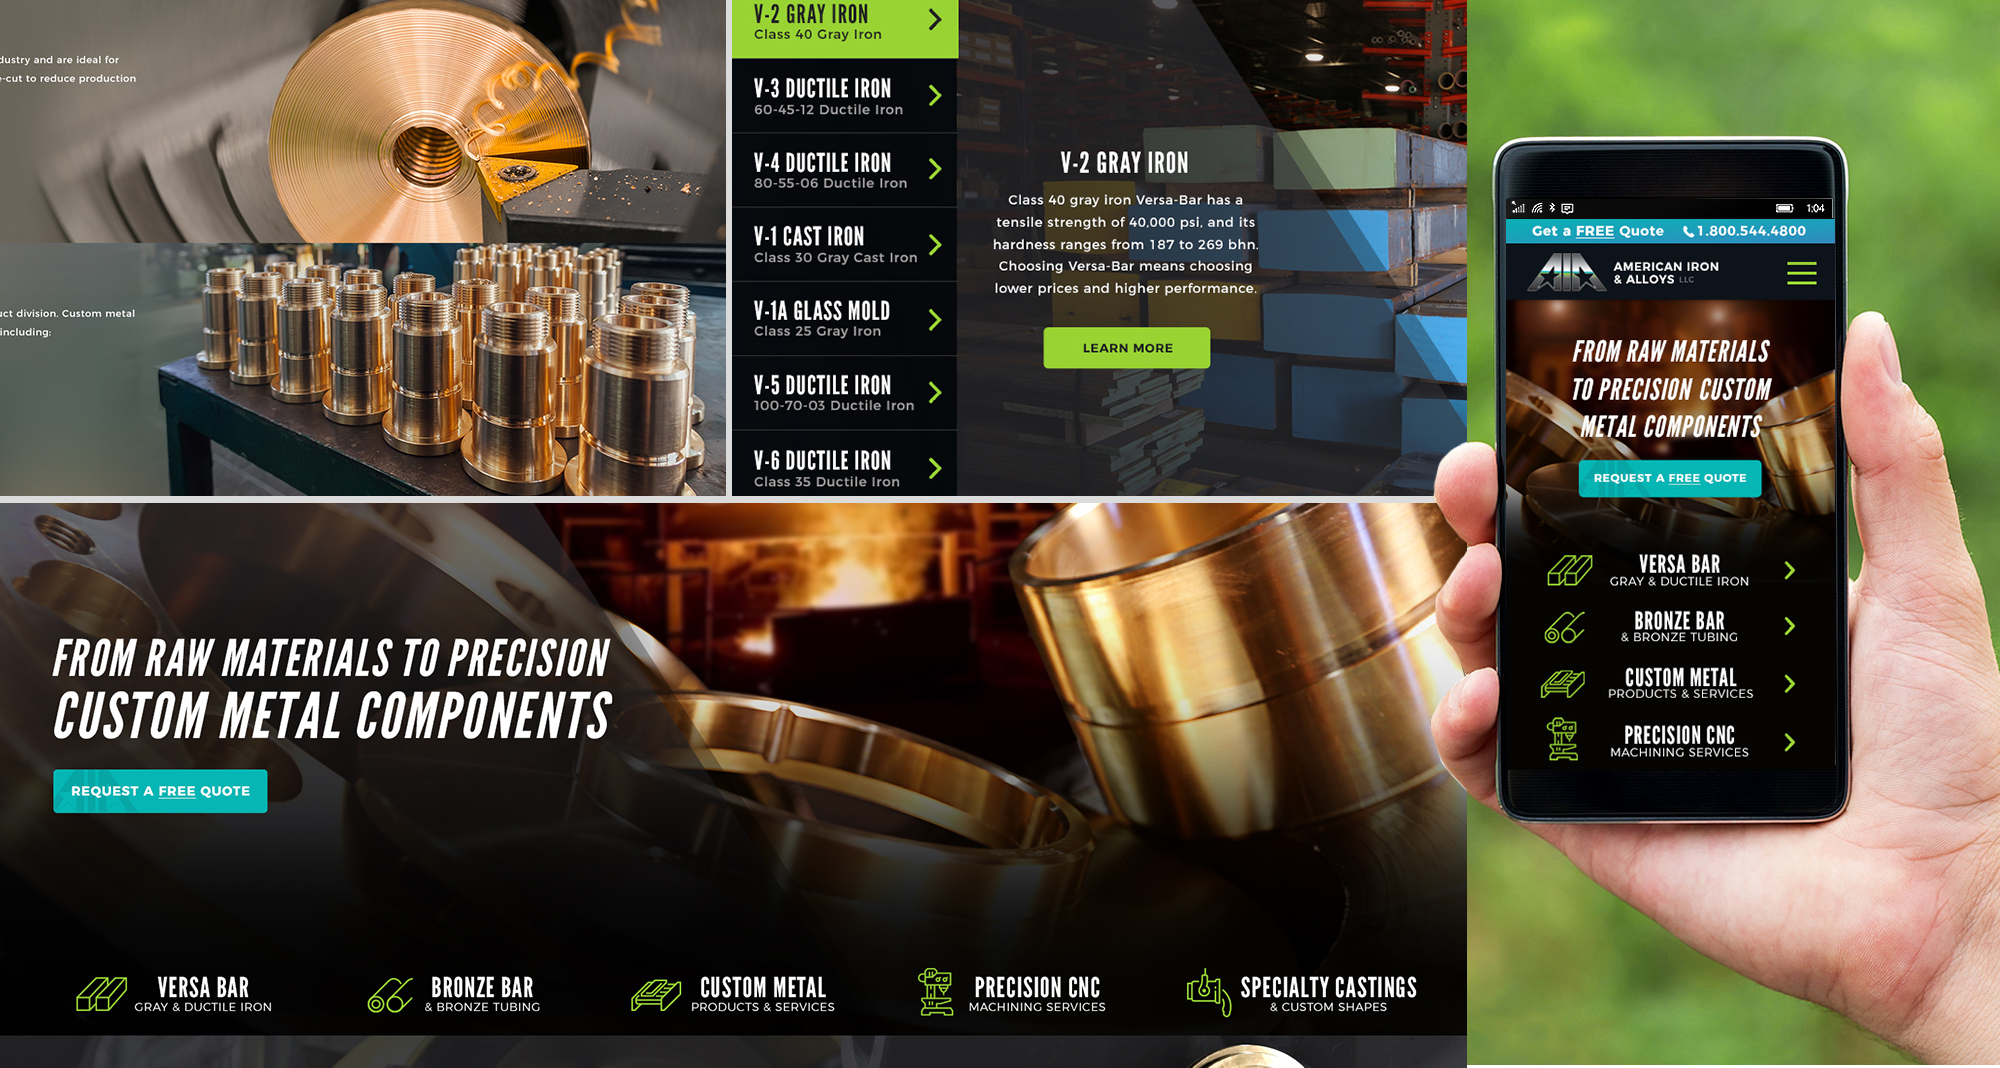 Milwaukee web marketing for American Iron & Alloys